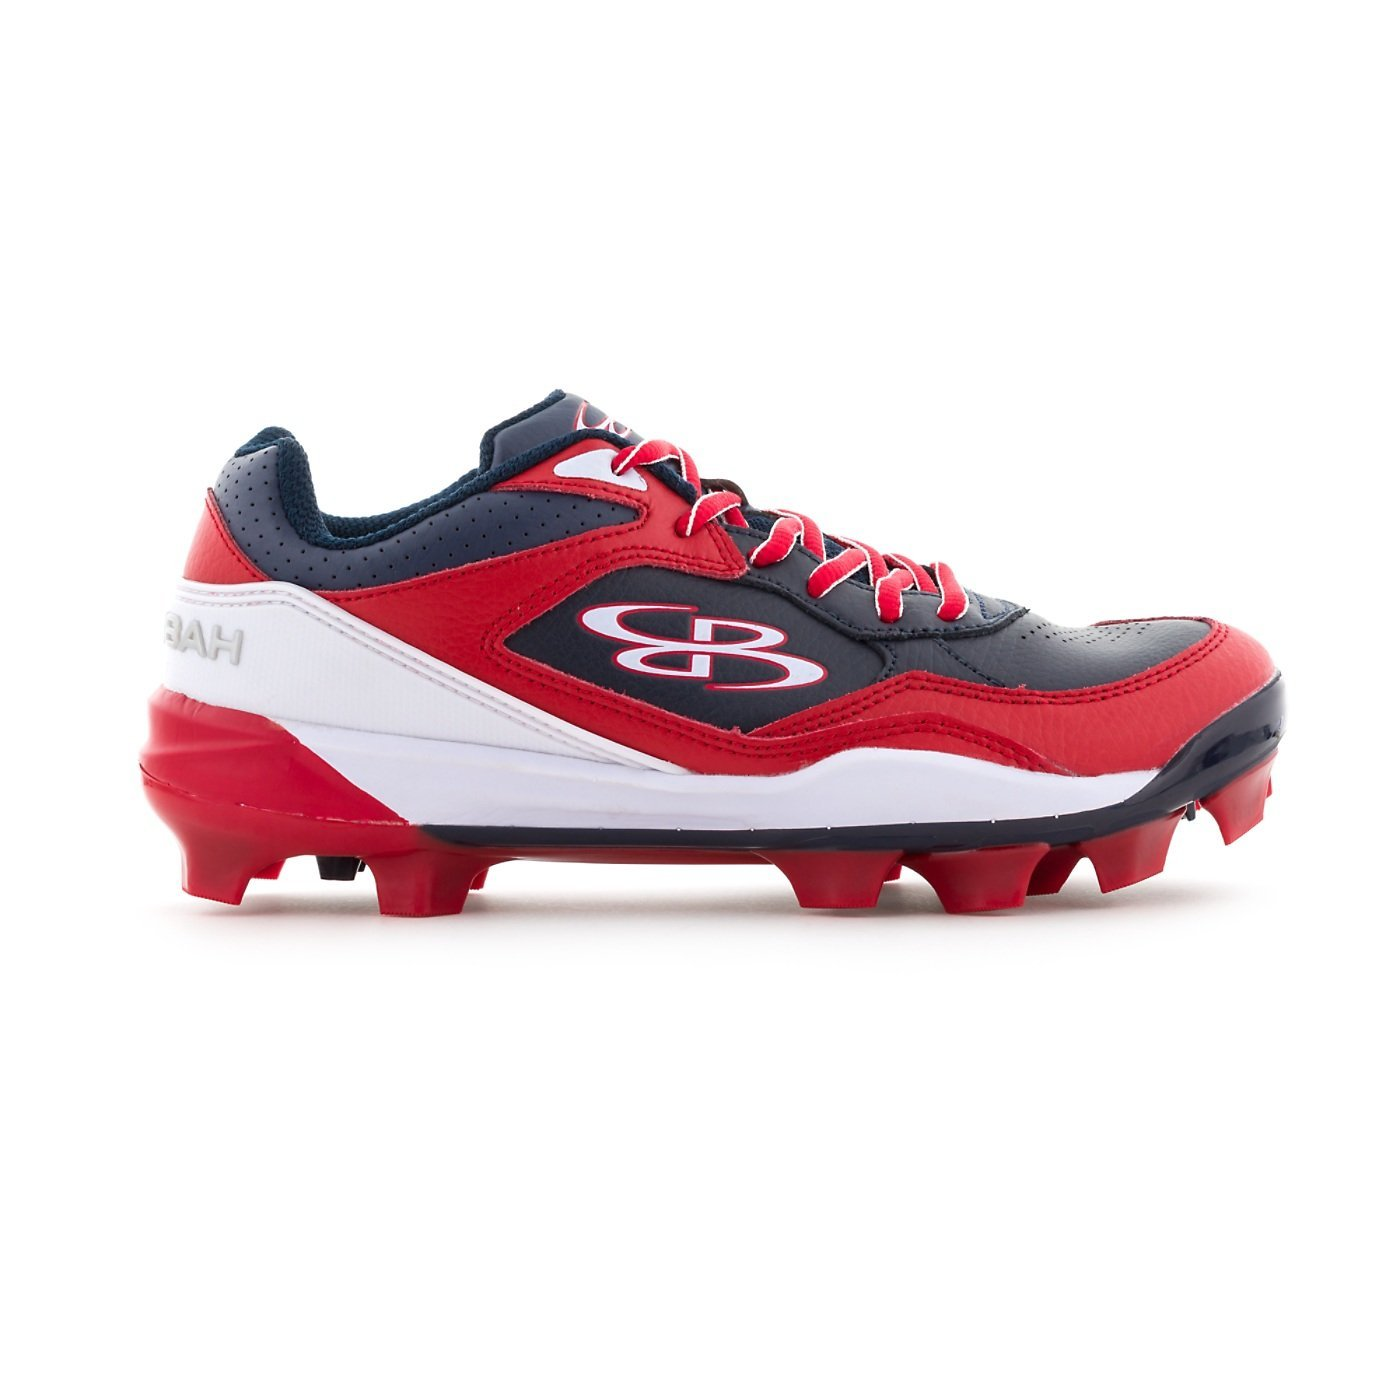 a280a2cd28e2 Get Quotations · Boombah Women s Endura Molded Cleats - 18 Color Options -  Multiple Sizes